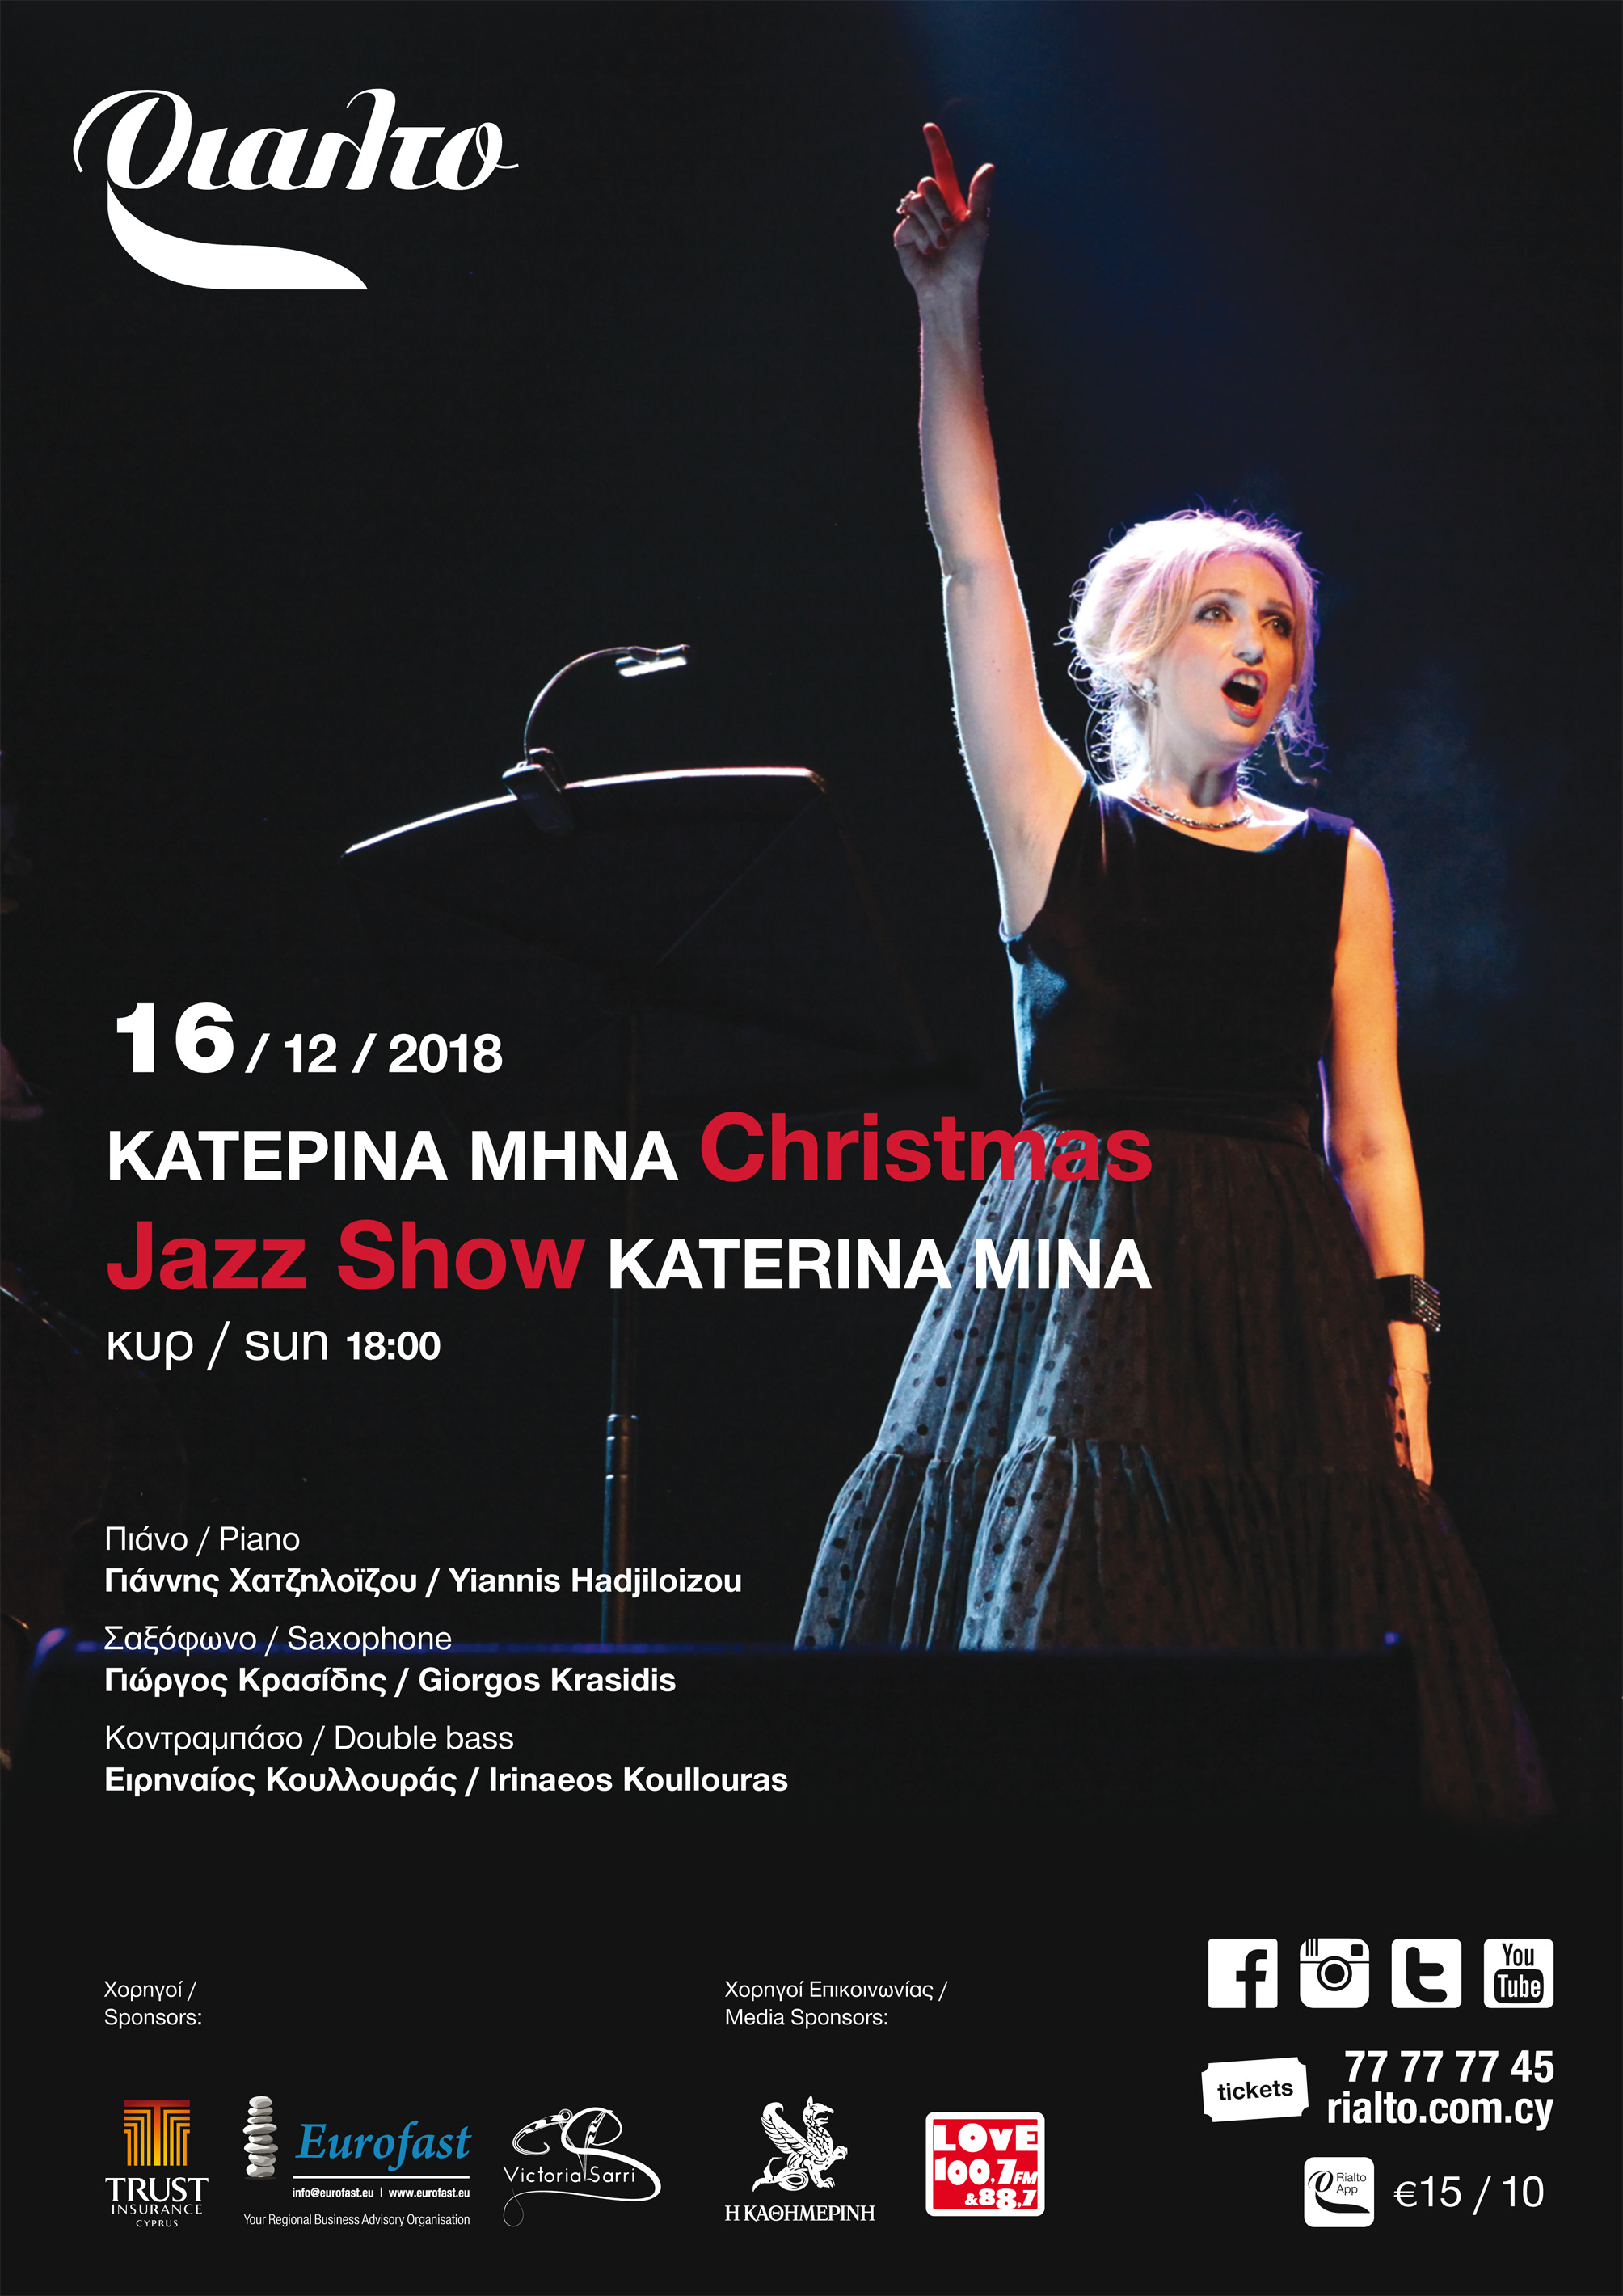 Annual Christmas Jazz Show, 16 December 2018 - Soprano Katerina Mina, pianist Yiannis Hadjiloizou, saxophonist Giorgos Krasidis & bassist Irinaeos Koulouras, return back to RIALTO Theatre Limassol to perform an unforgettable Christmas Show!This unique program features some of the most famous Christmas songs by pioneer Jazz composers, amongst others, I'll be home for Christmas, Santa Baby, Blue Christmas, 'Zat you Santa Claus, The Christmas Song, White Christmas, as well as a medley of famous Christmas carols sang in Greek. The program also includes some of the most well known songs by George Gershwin, Cole Porter and Kurt Weill.Katerina extends her sincere gratitude to her sponsors Eurofast Global and Victoria Sarri Atelier.To read more about the show and book your tickets, click on the box below!